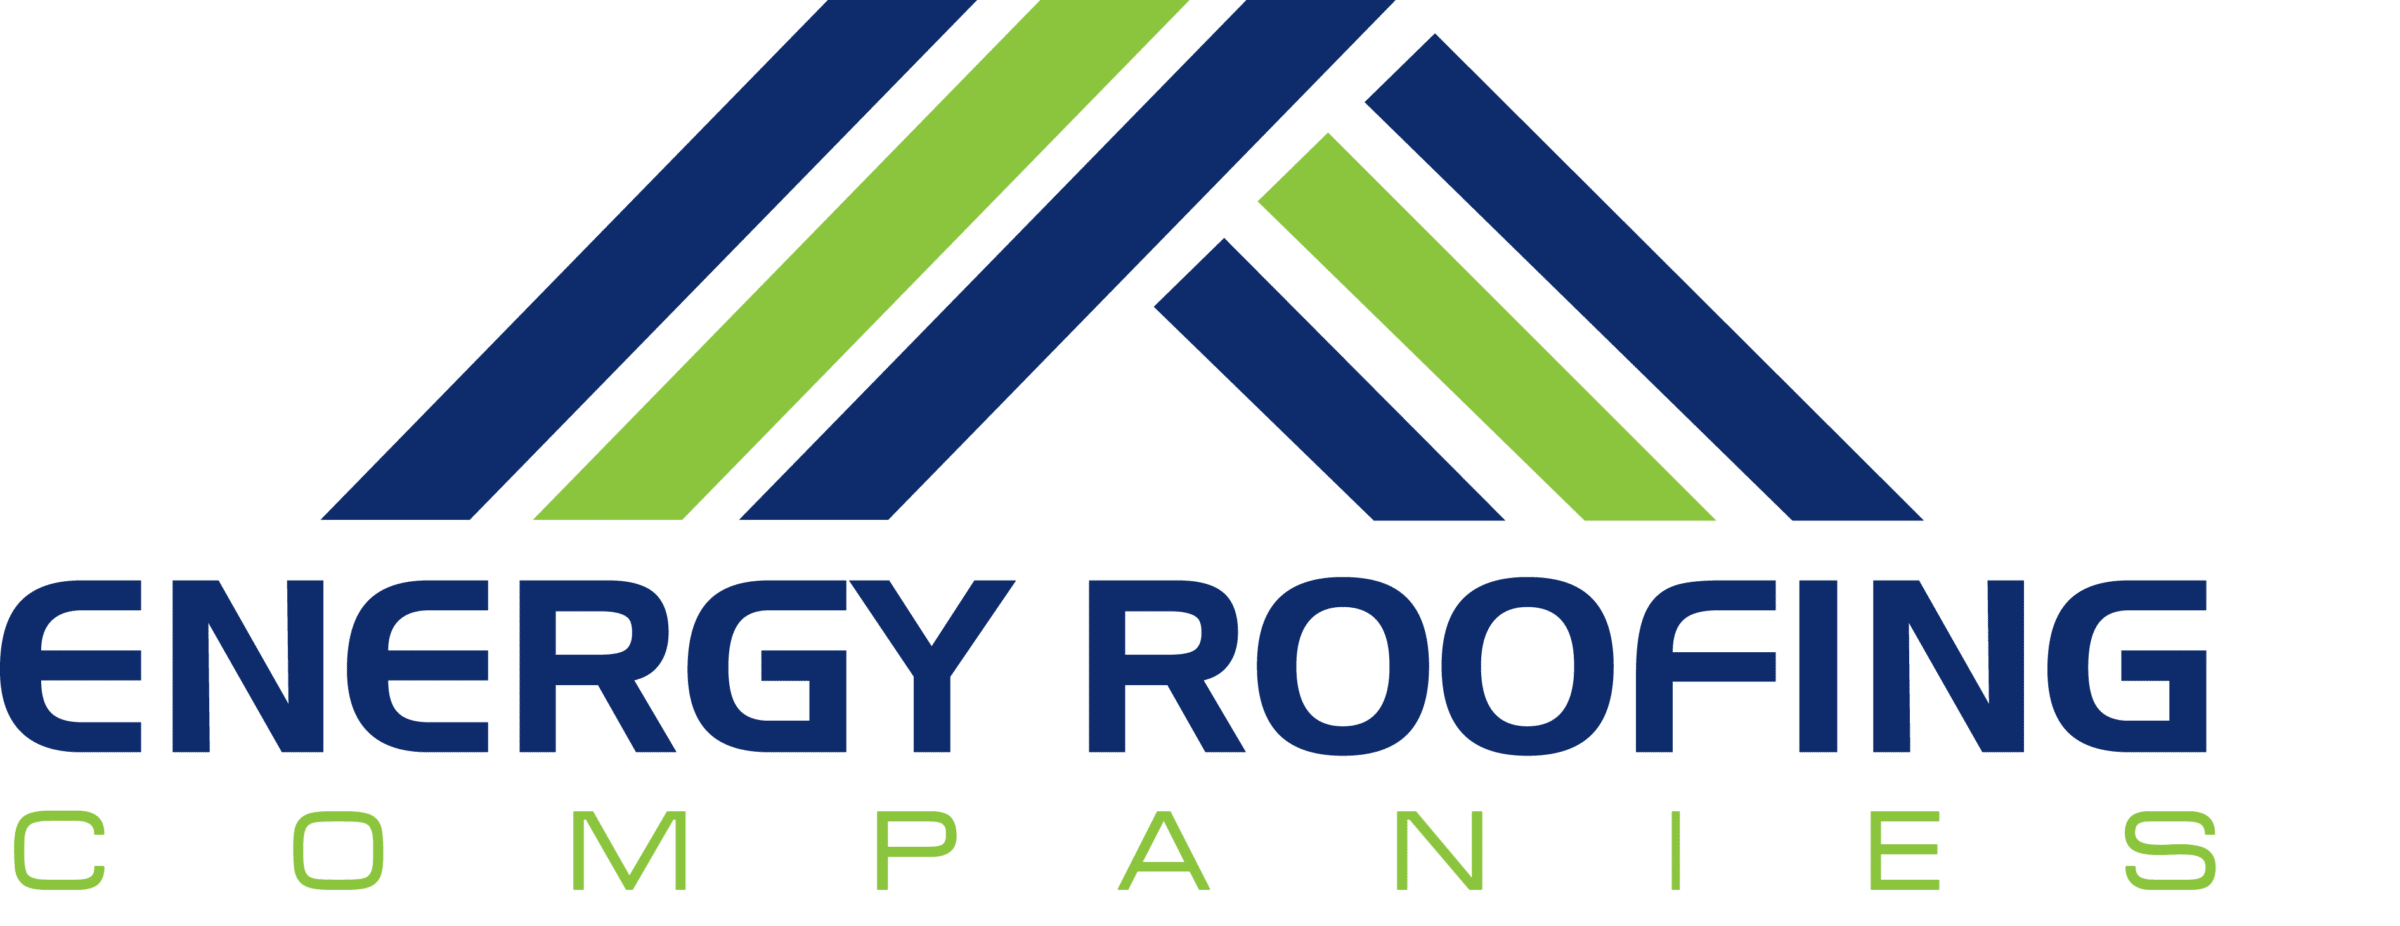 Energy Roofing Companies in Gainesville Recognized as GAF Master Elite Roofing Contractor in Gainesville, Florida